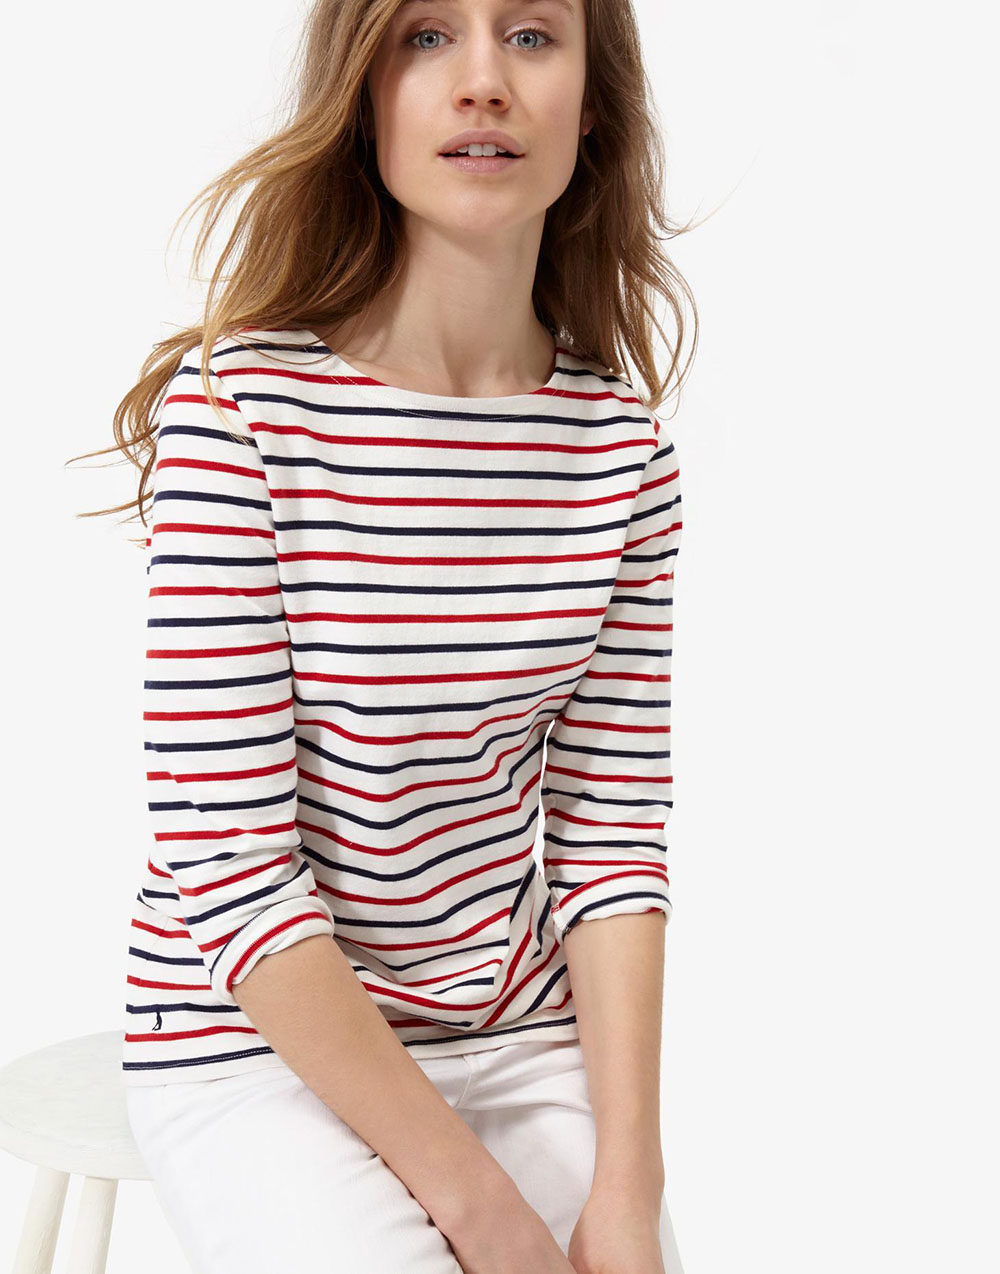 Cut from breezy double-knit cheesecloth, this fresh teen top can be worn on or off the shoulder for a cool and versatile style. The stripe print adds a fun nautical touch, while the ruffle shoulder detail and front buttons are both pretty and practical. Made from cotton, this .